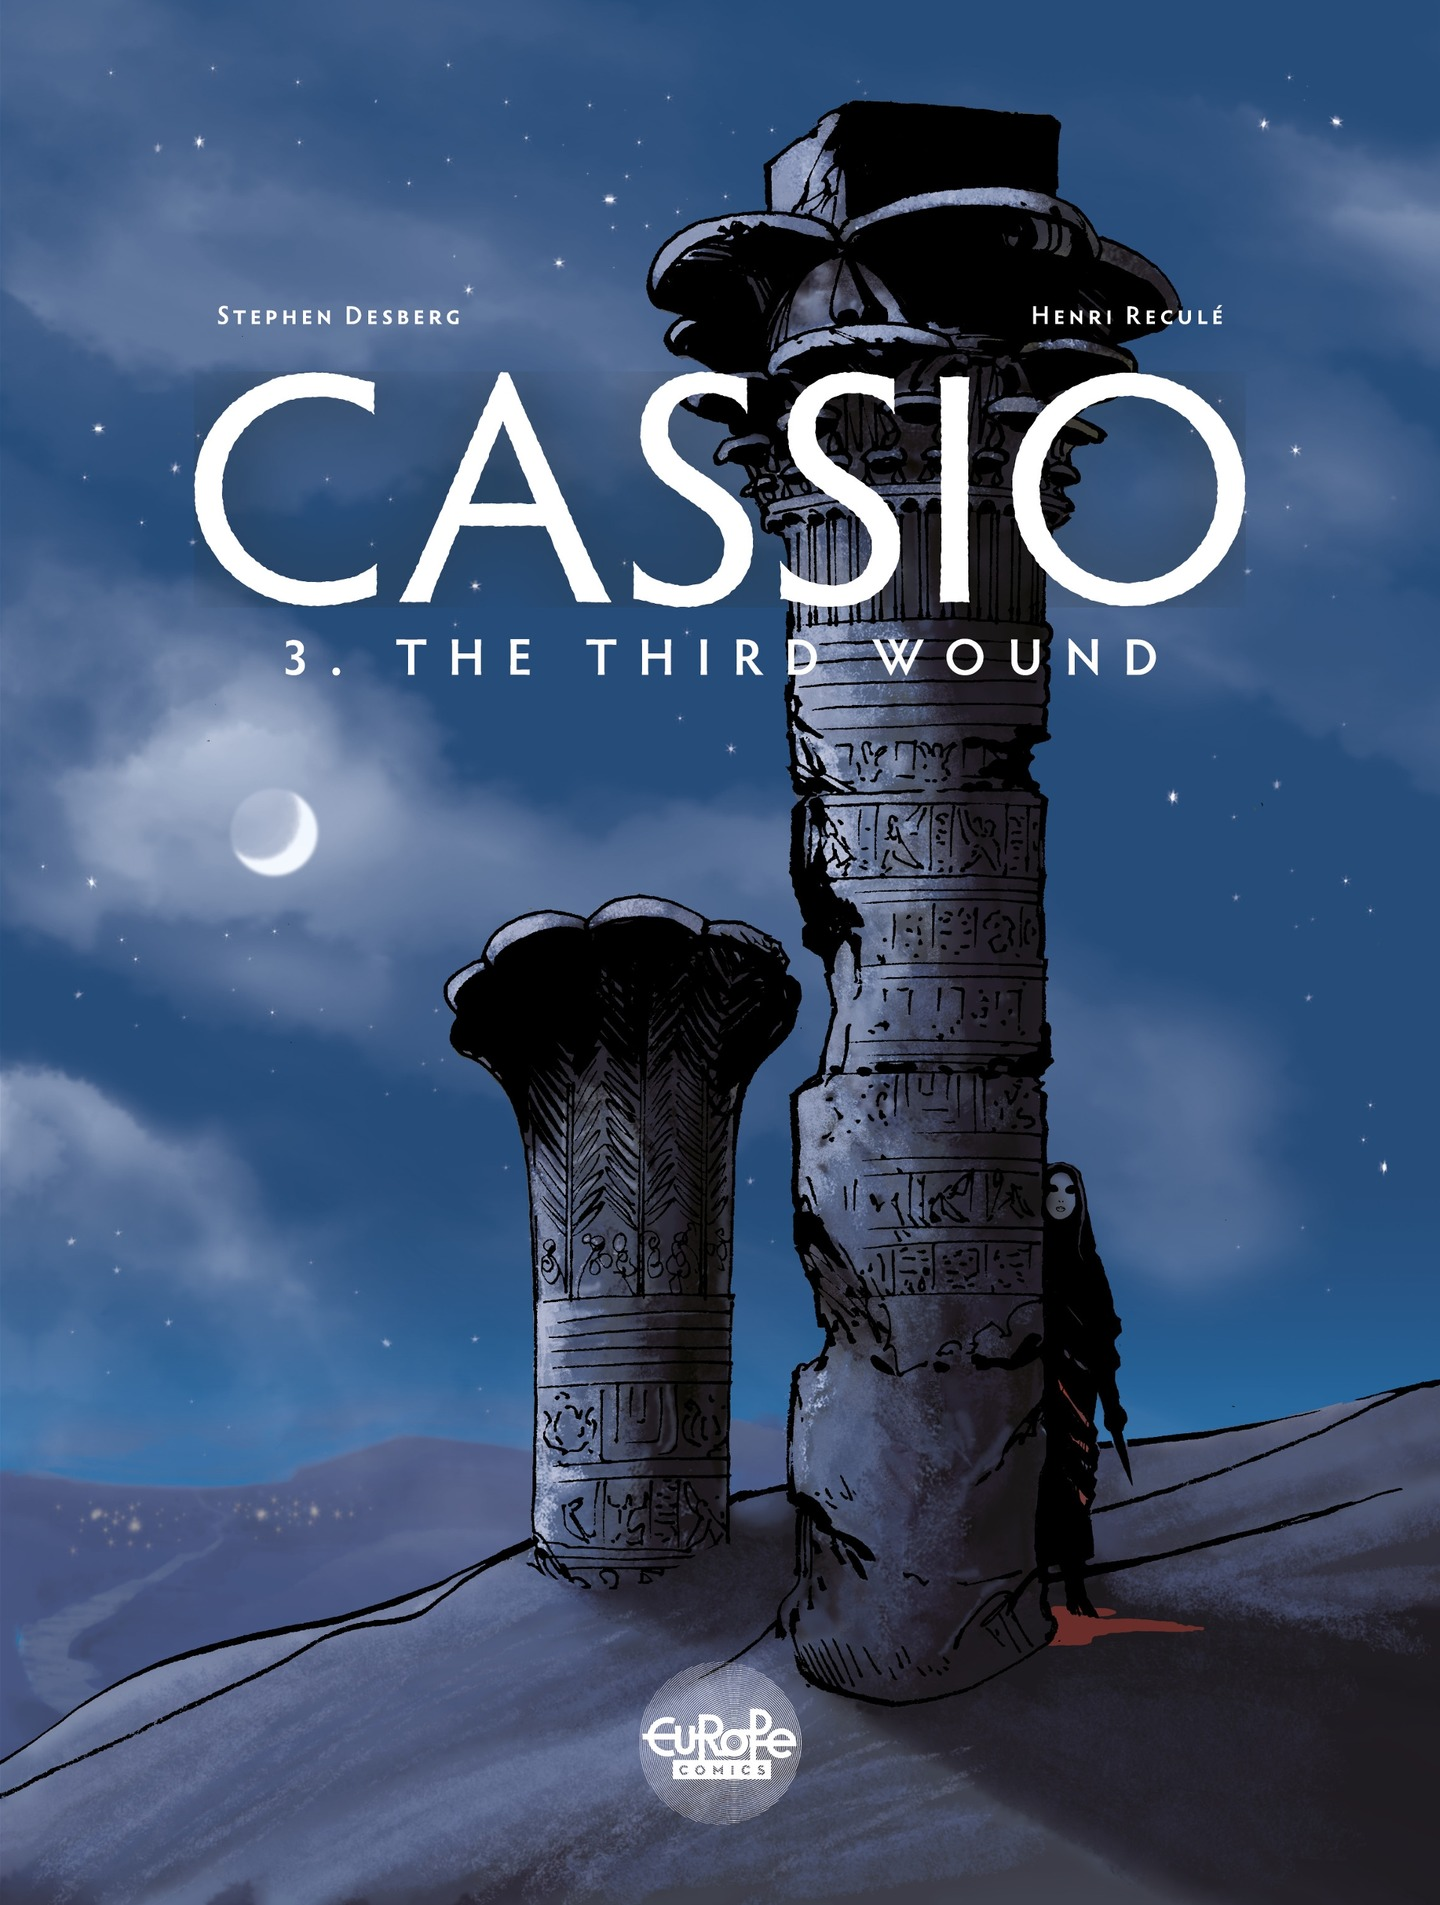 Cassio 3. The Third Wound